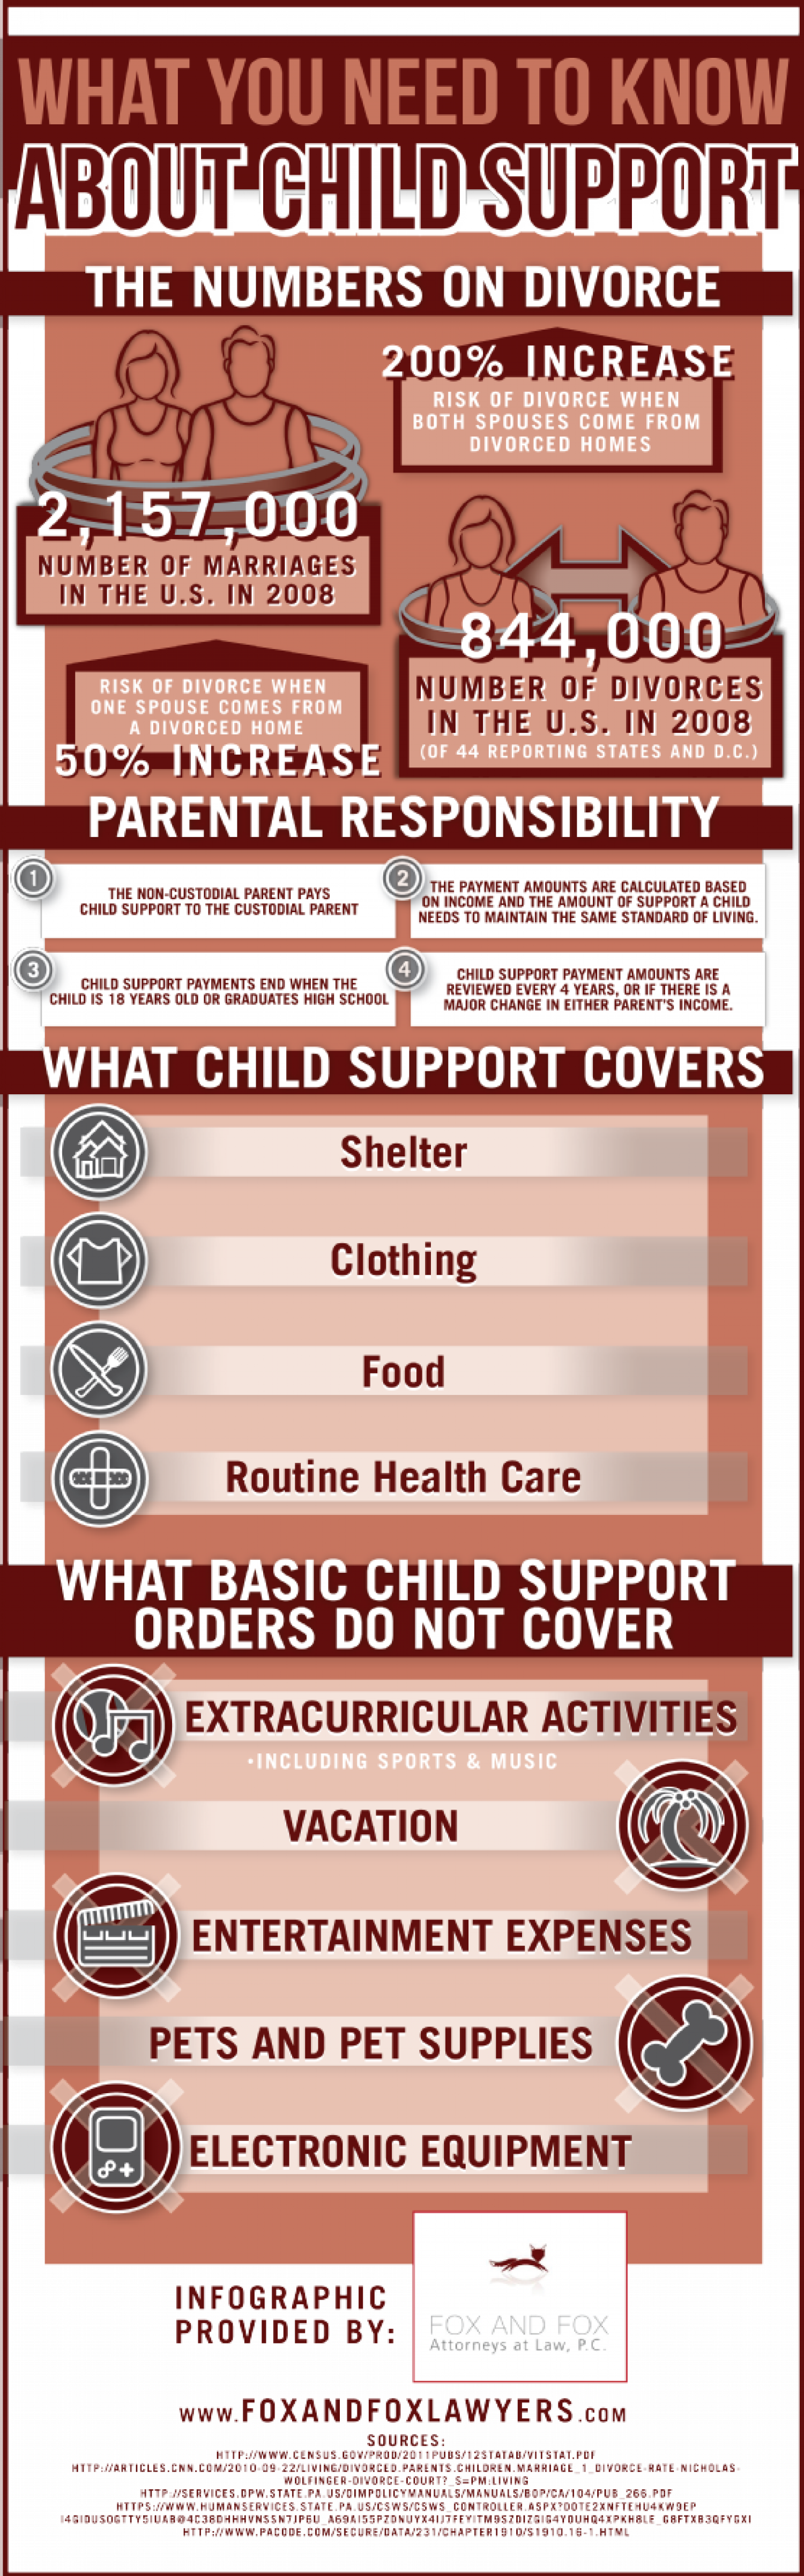 What You Need to Know About Child Support Infographic